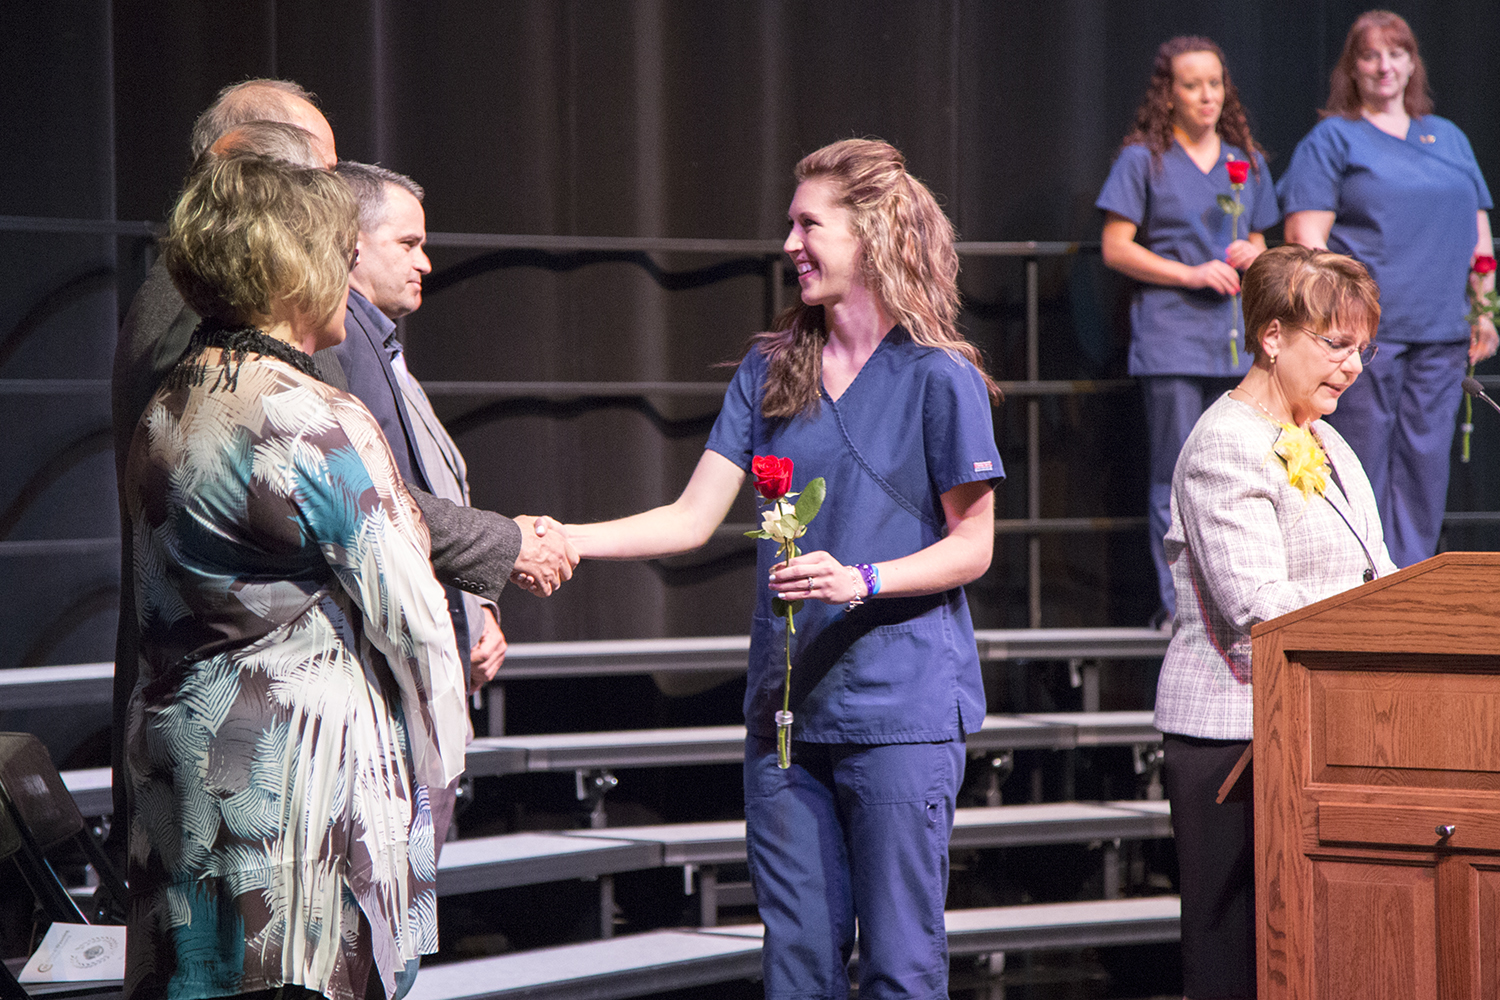 student nurse shaking hands with college vice president